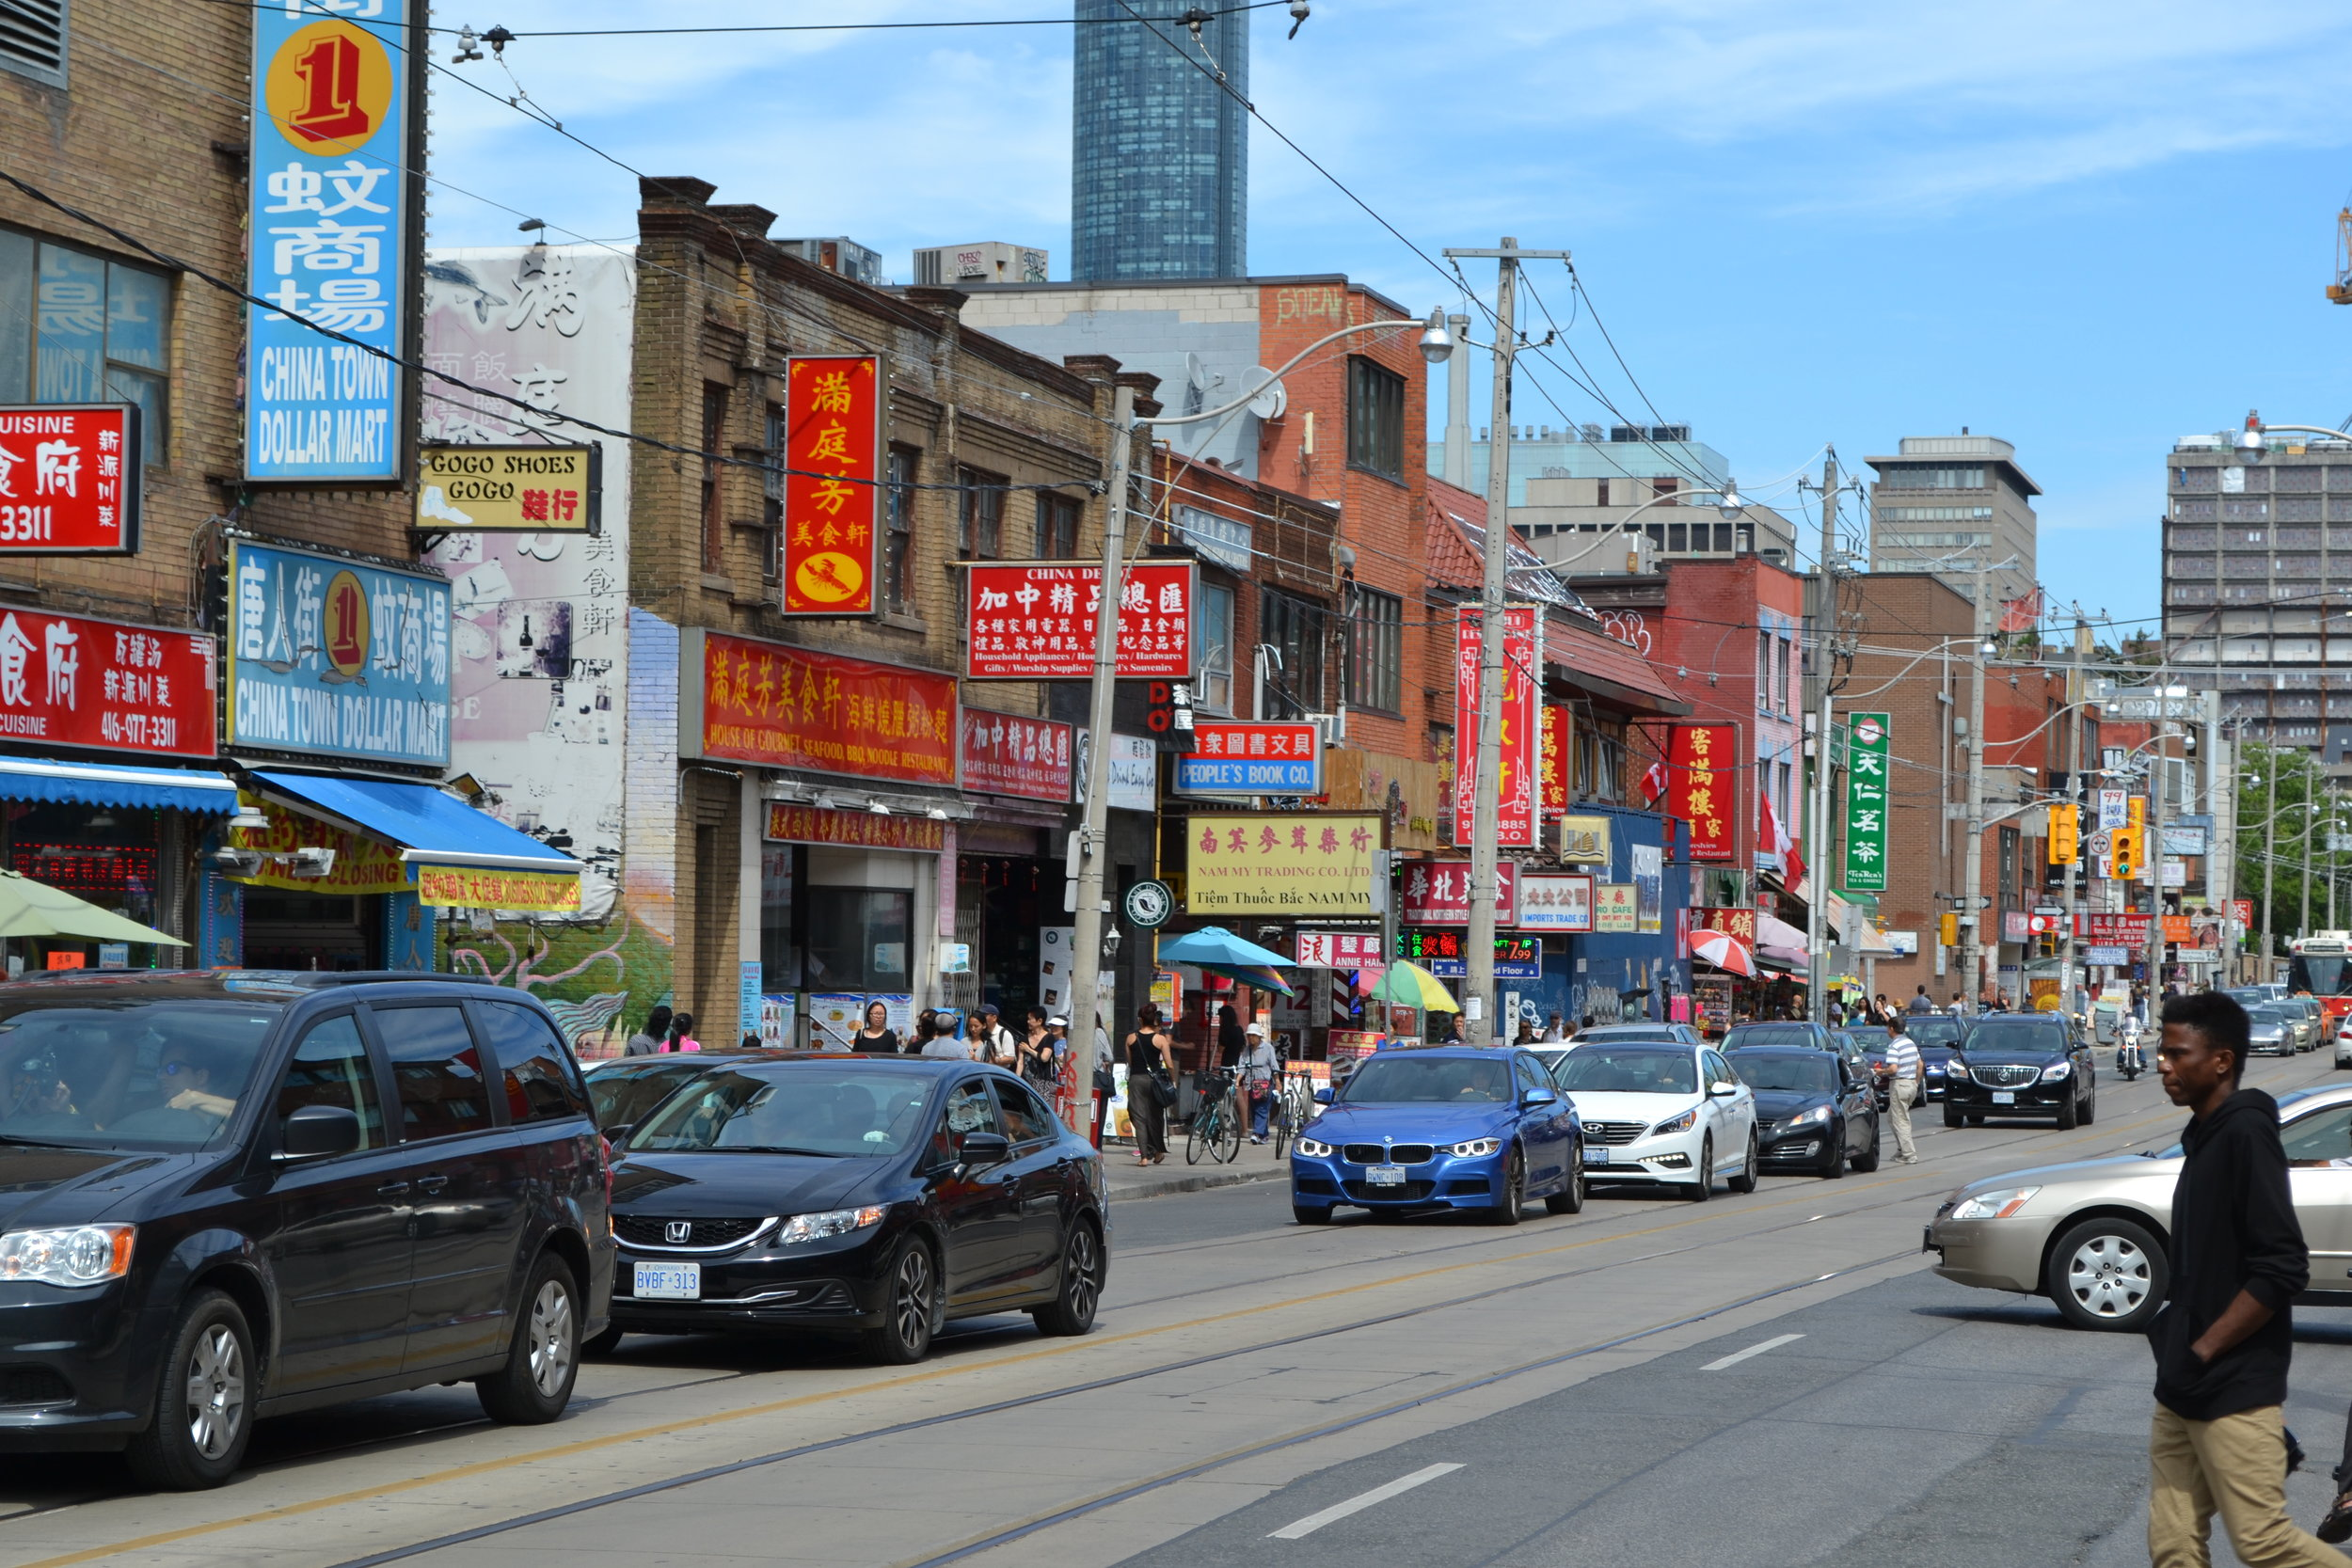 China Town in Toronto.